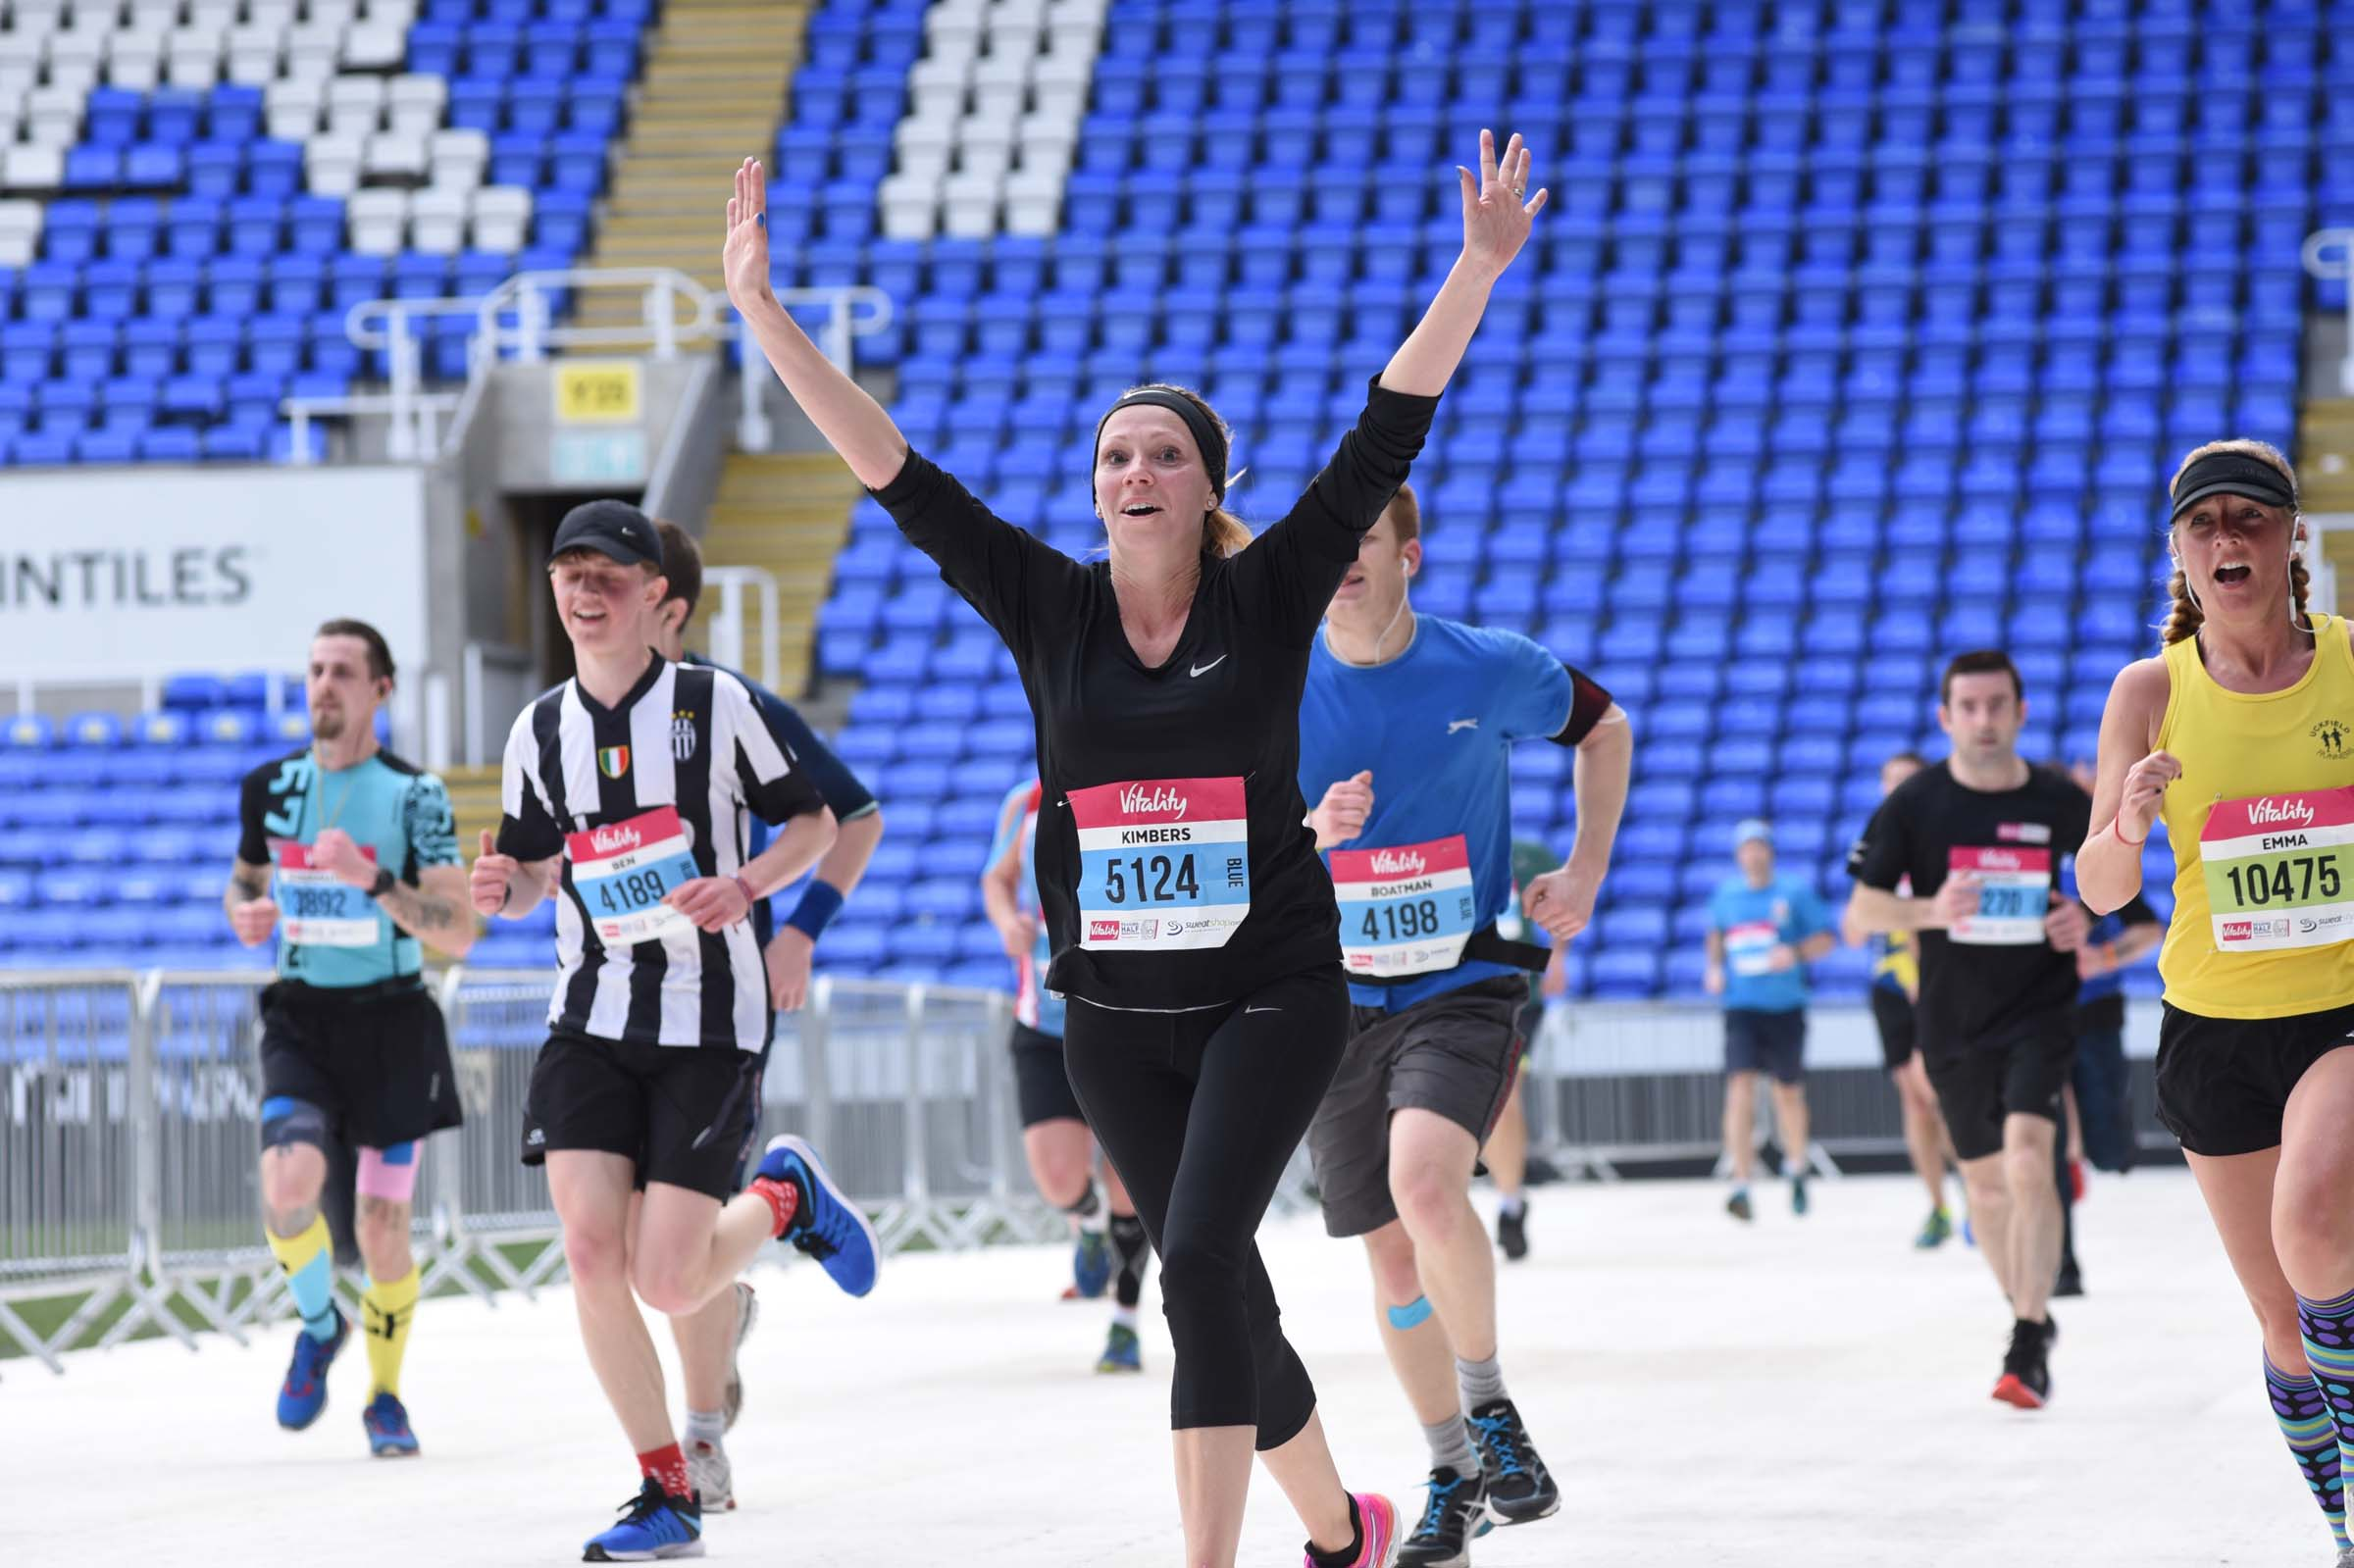 Reading Half Marathon organisers introduce special offer for group bookings